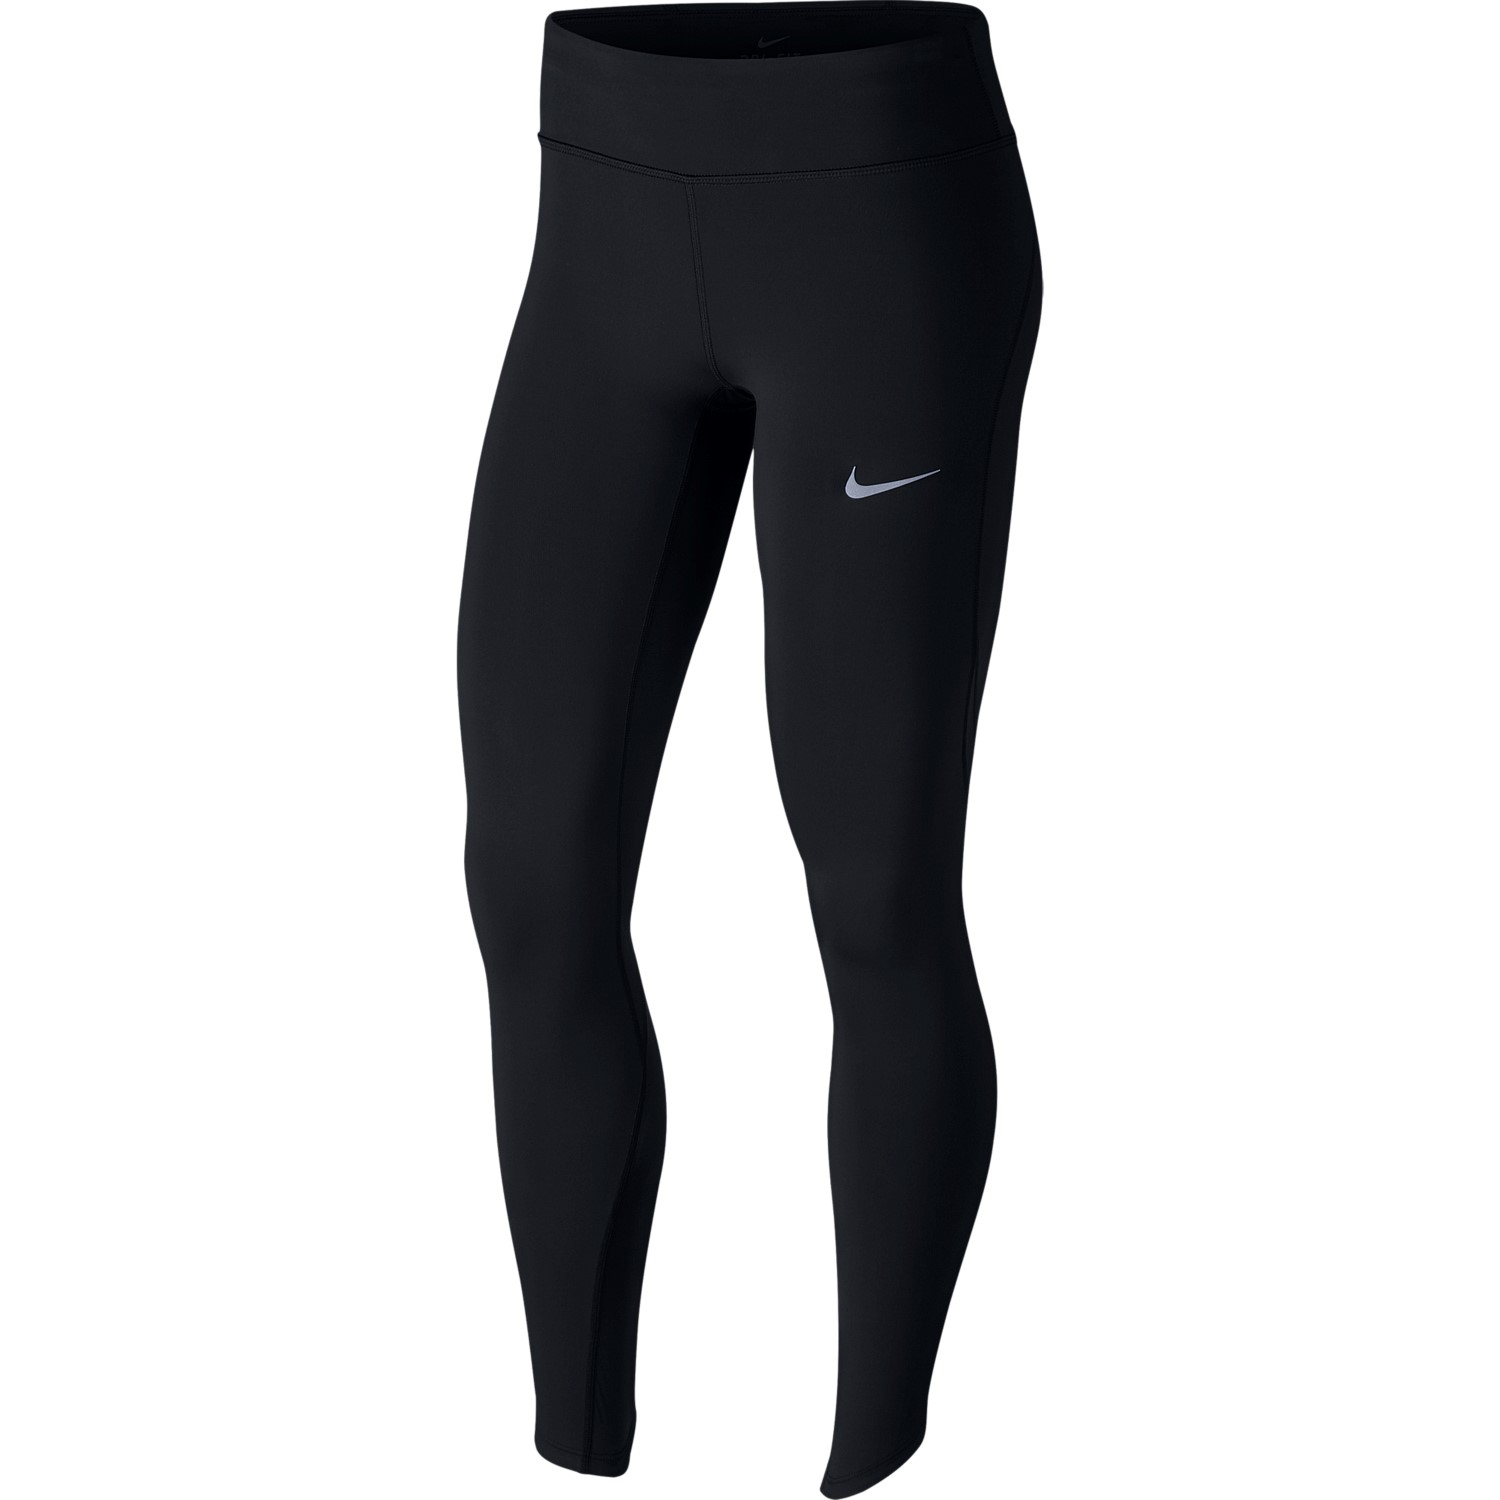 4e981b23 Women's New Arrivals | Women's New Arrivals Clothing and Footwear Online |  Stirling Sports - Epic Lux Running Tights